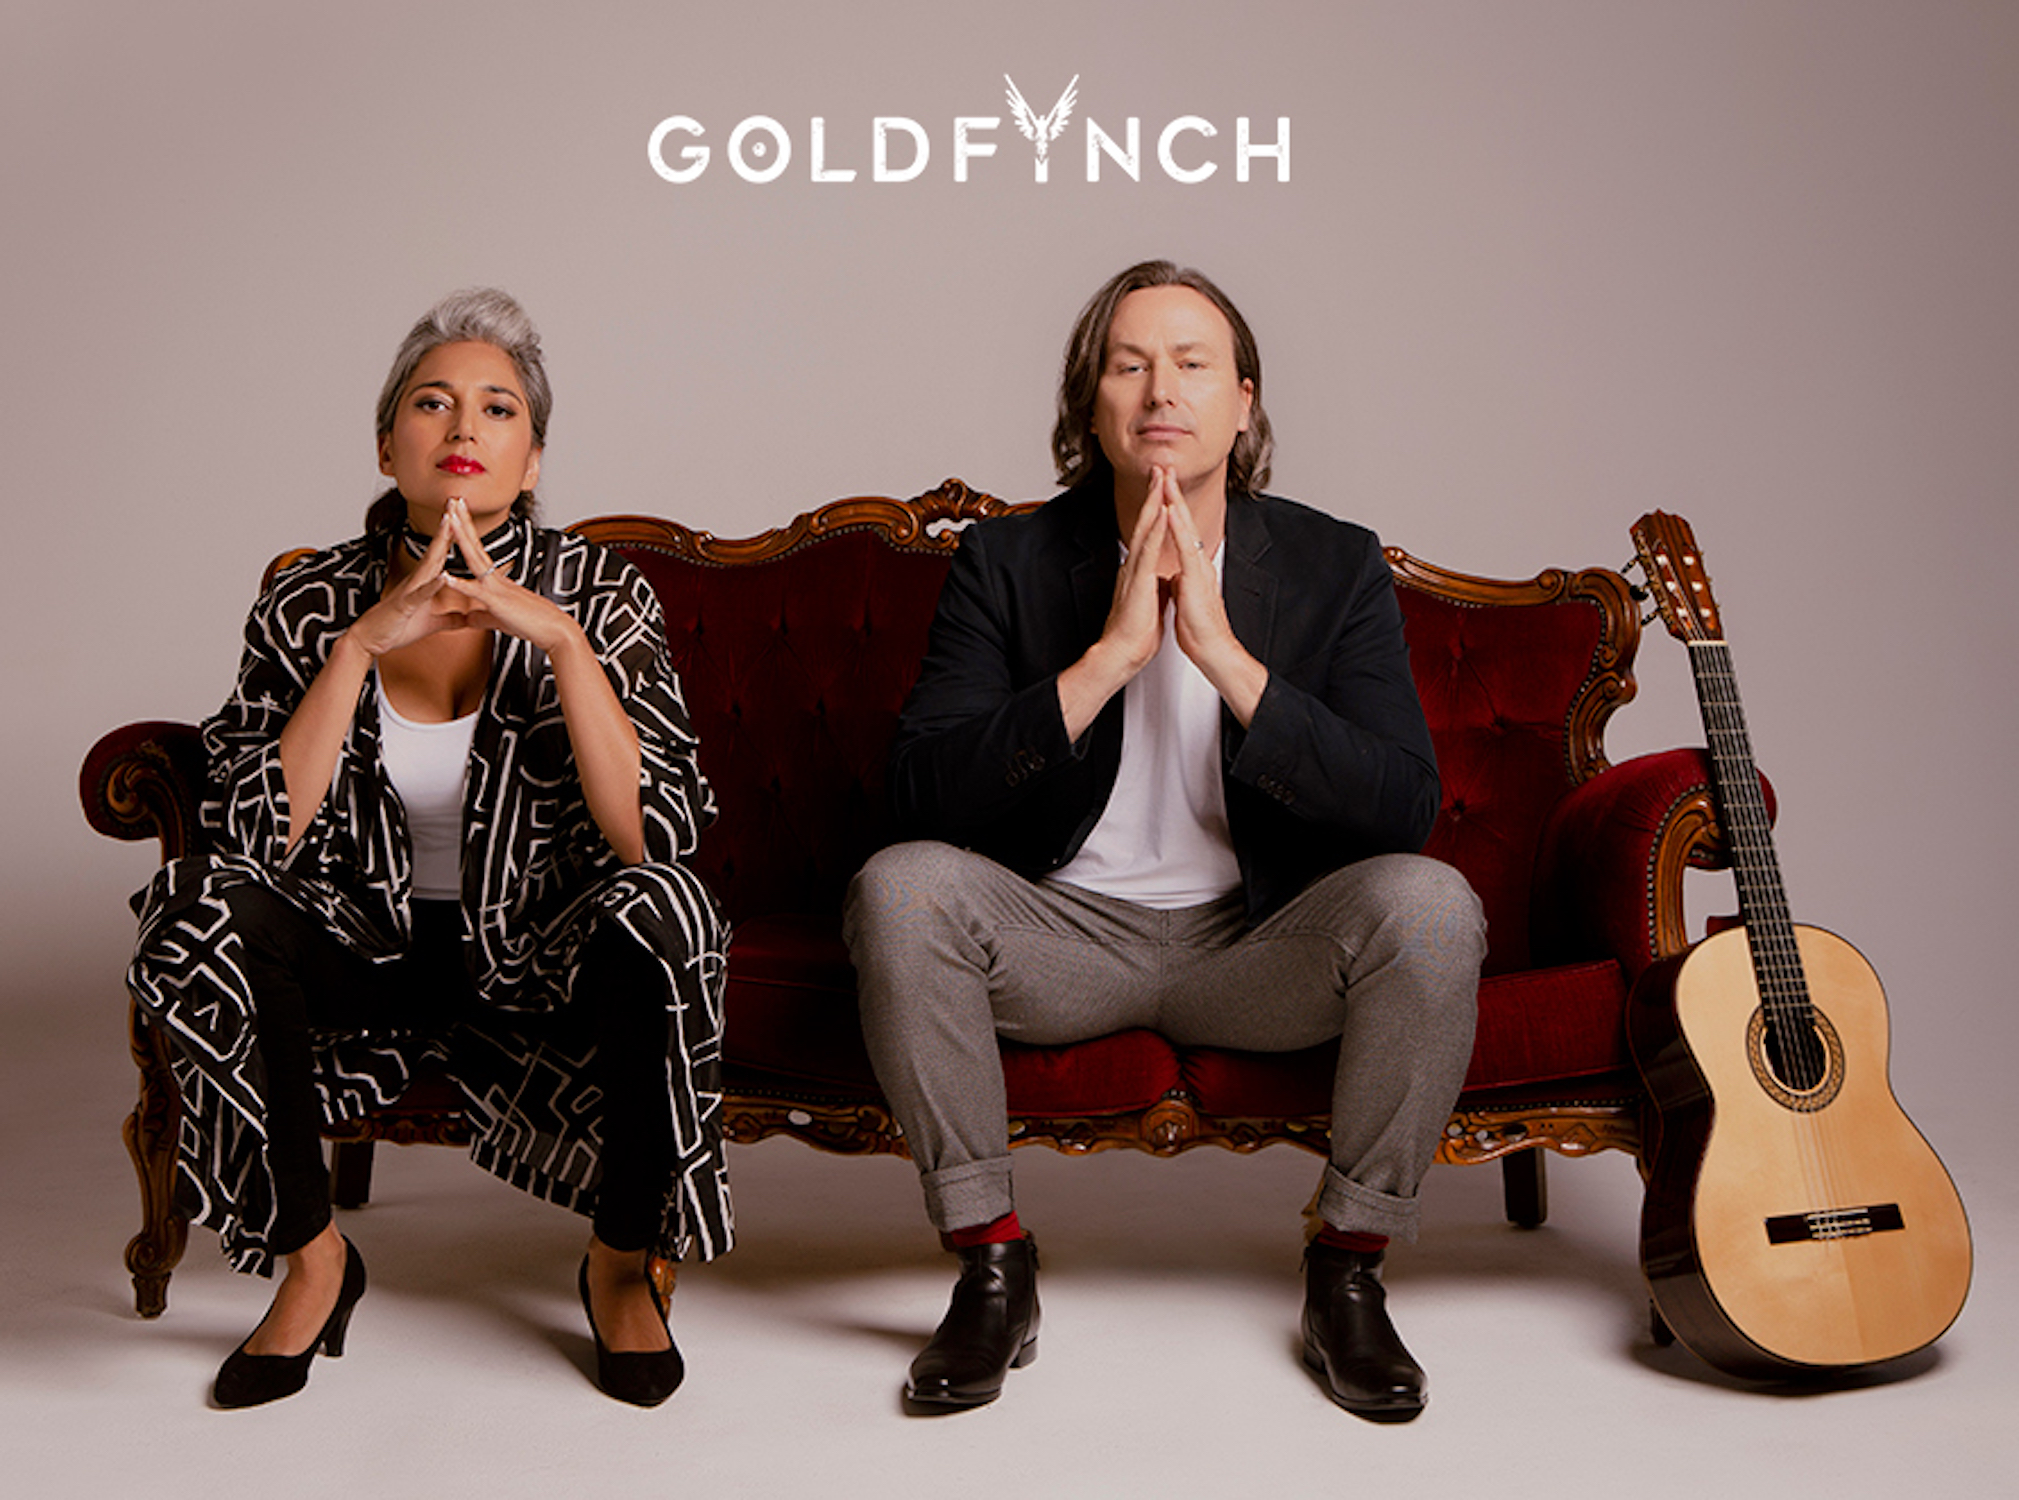 GOLDFYNCH REVEAL DEBUT SINGLE & VIDEO 'BRIGHTER DAY'